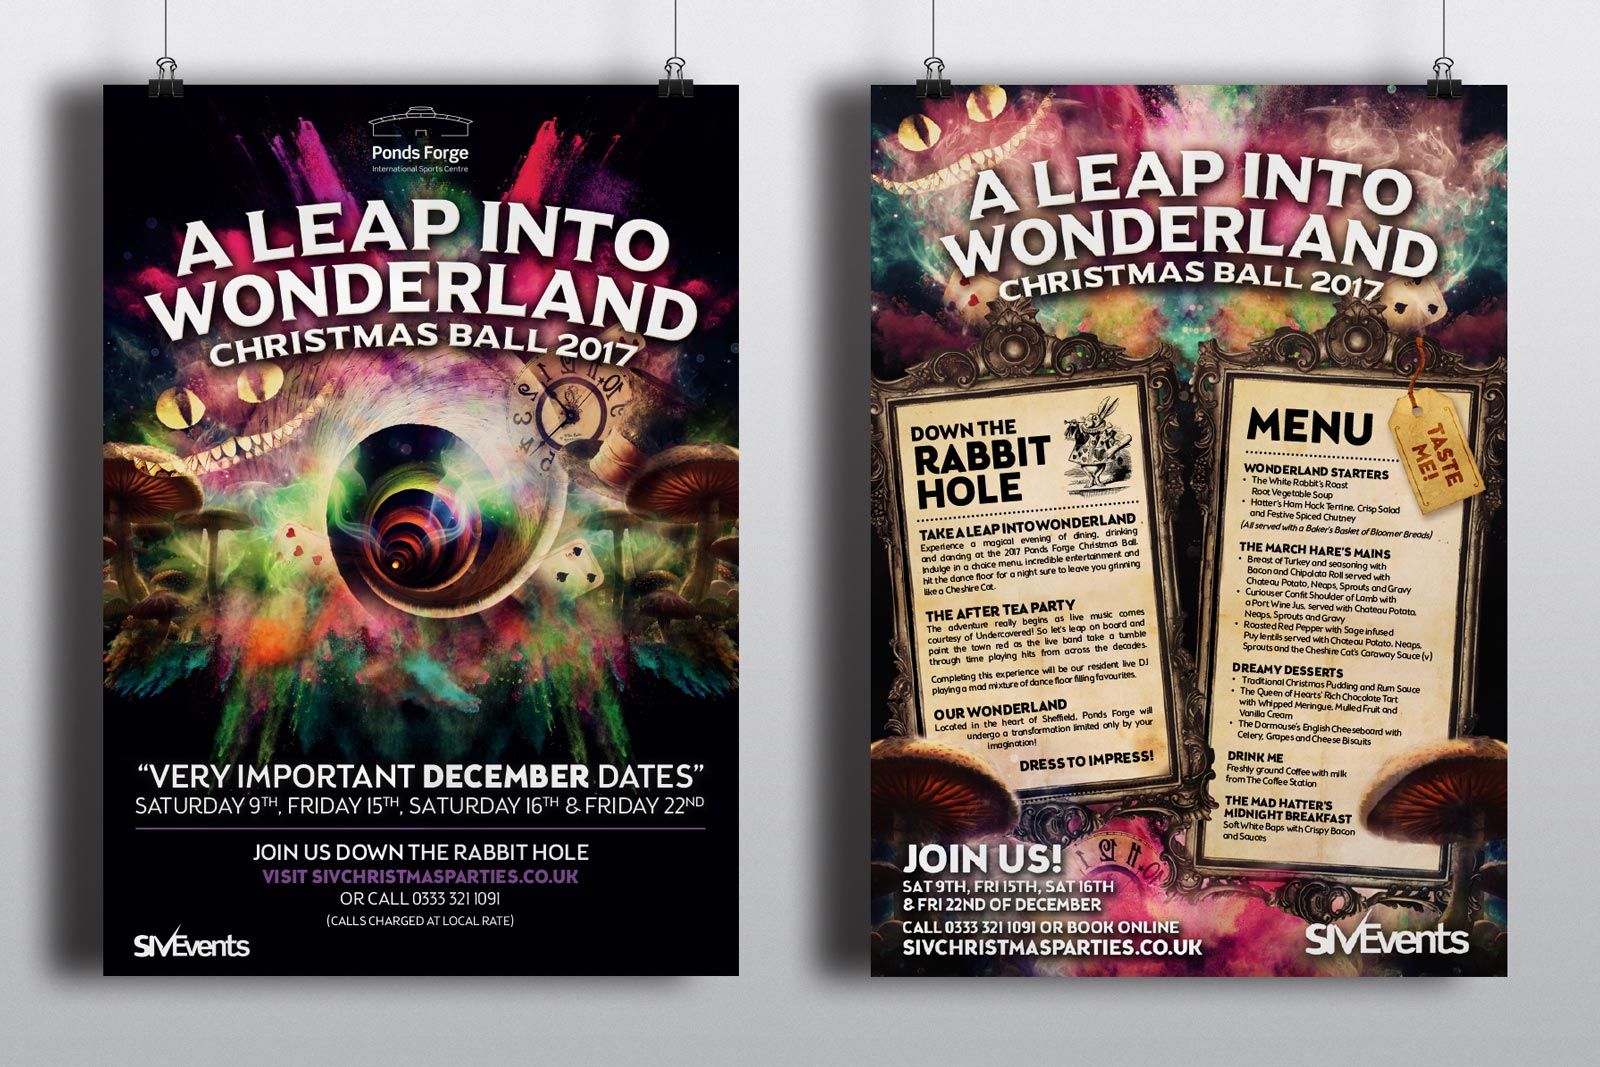 L---A-leap-Into-wonderland-Posters